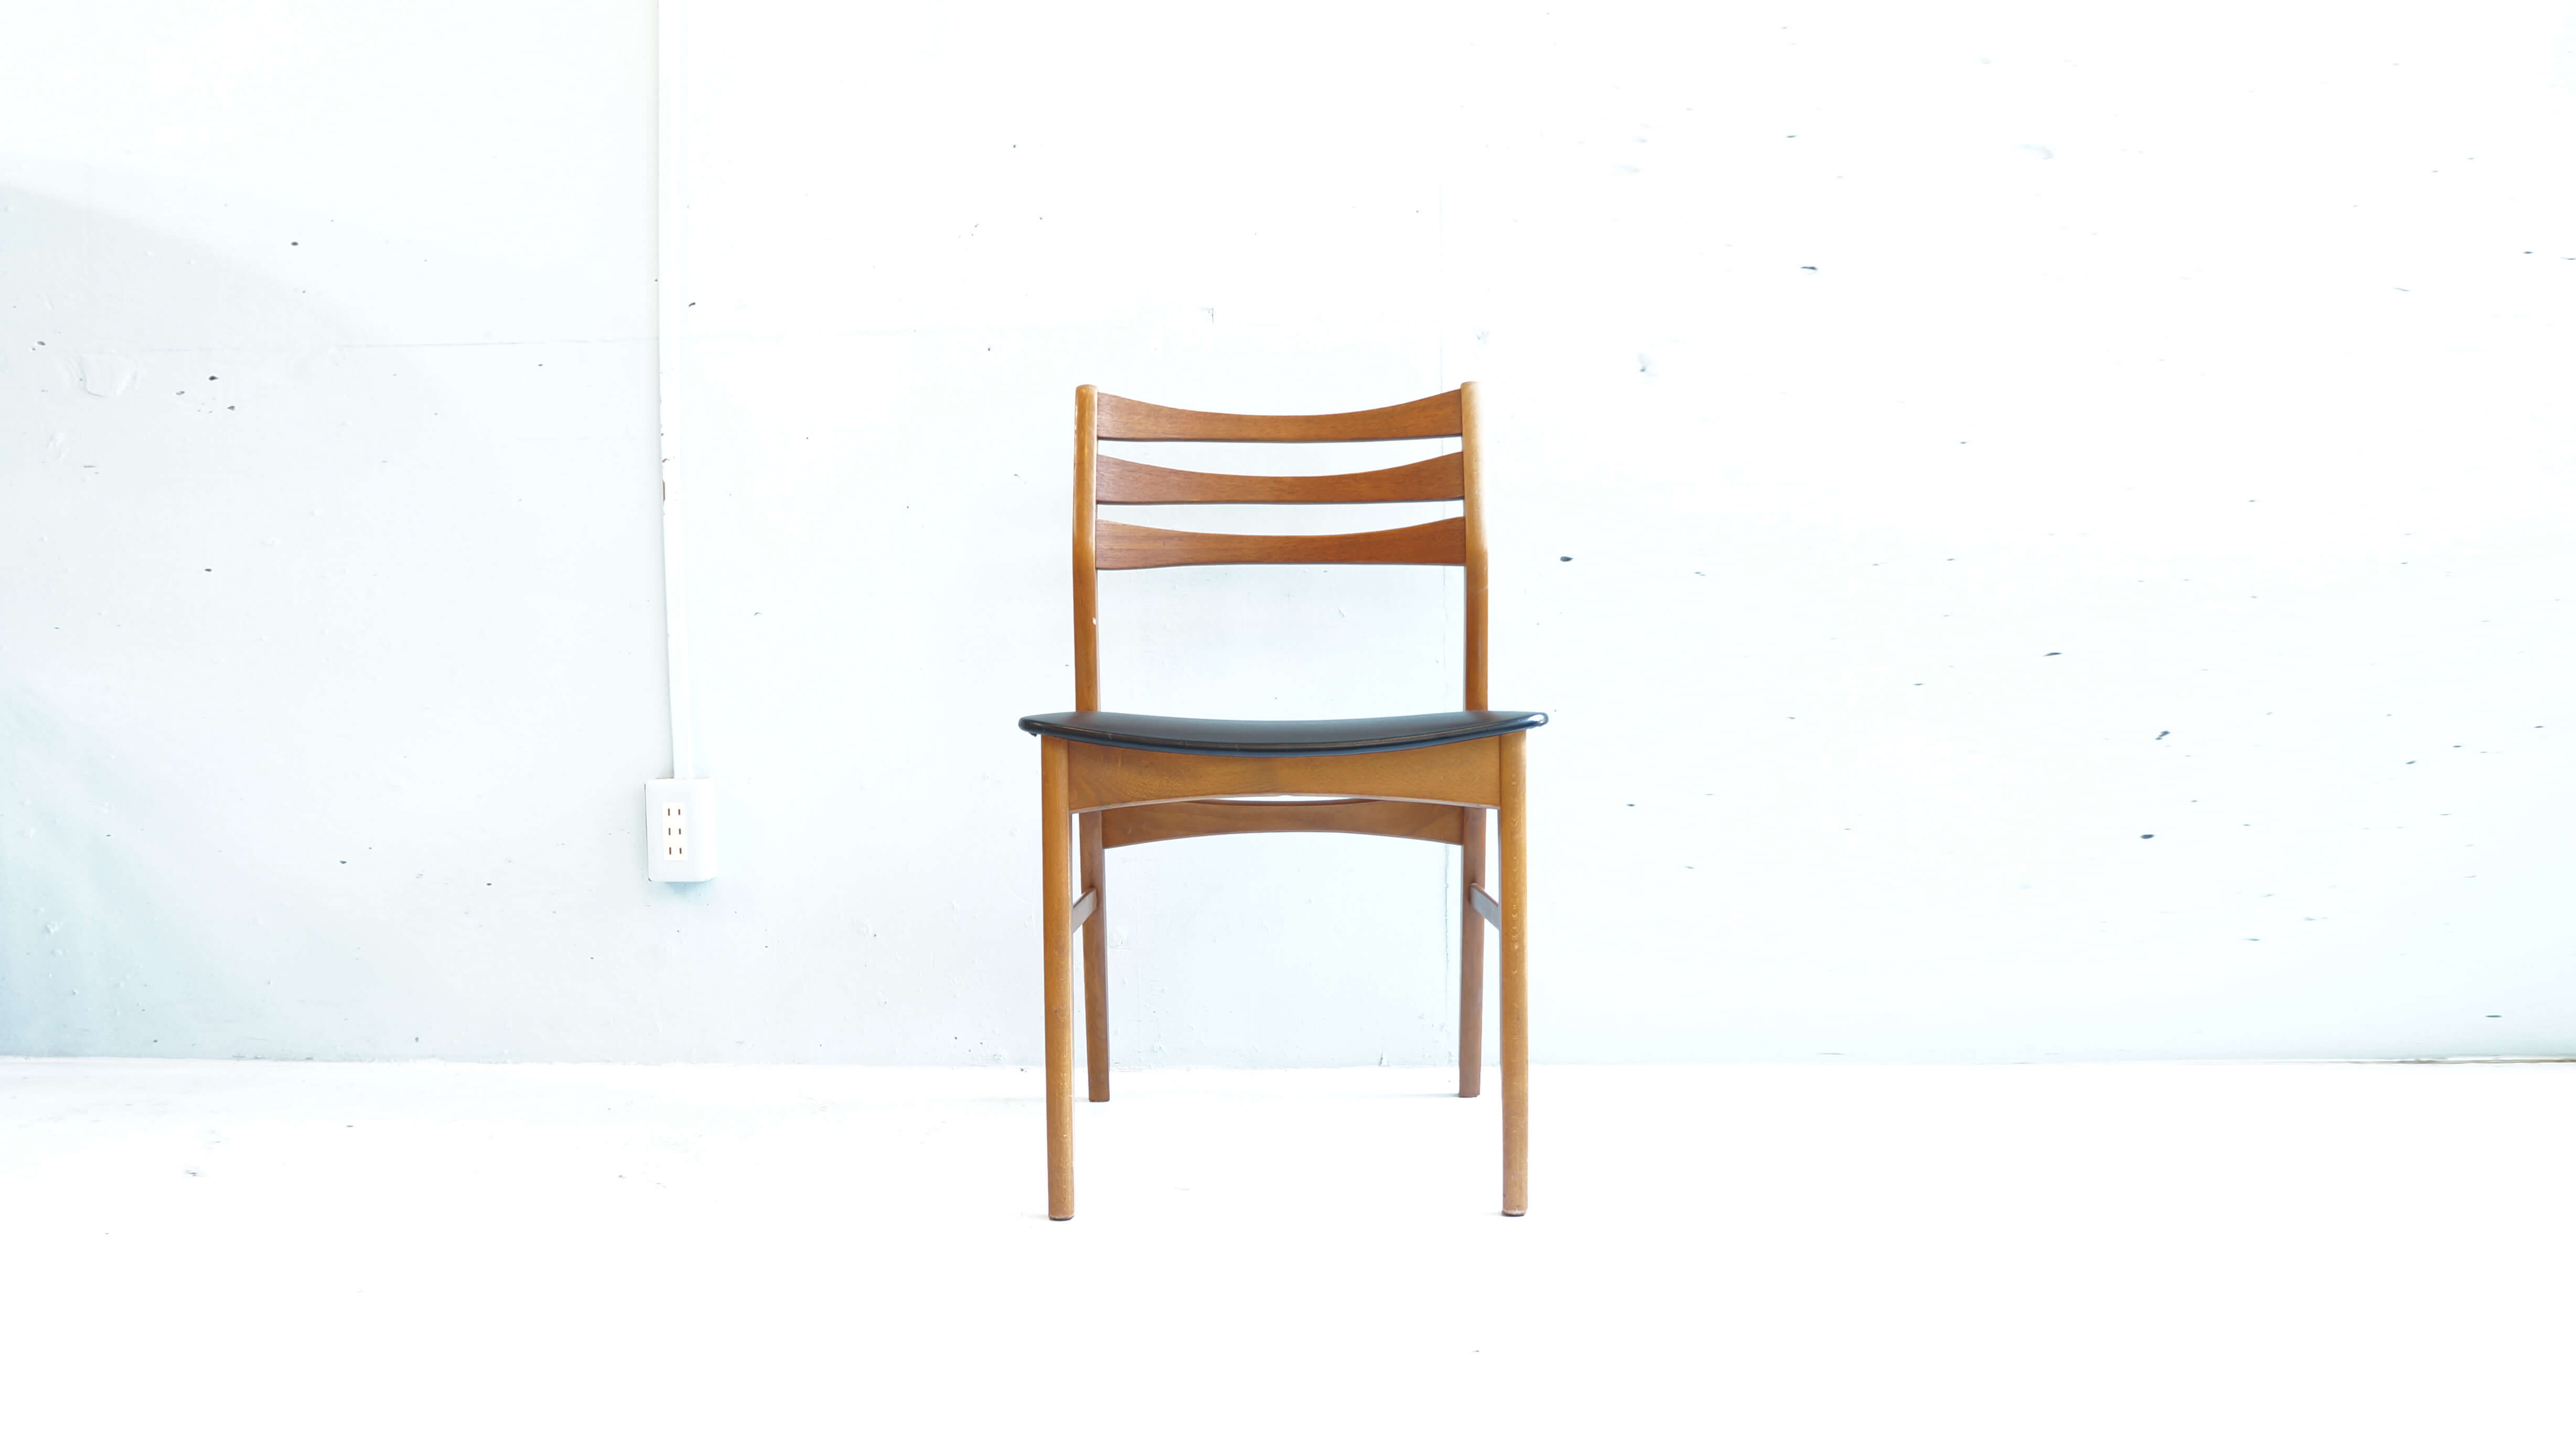 Faldsled & Mobelfabrik Dining Chair Made in Denmark / デンマーク製 ダイニングチェア 北欧家具